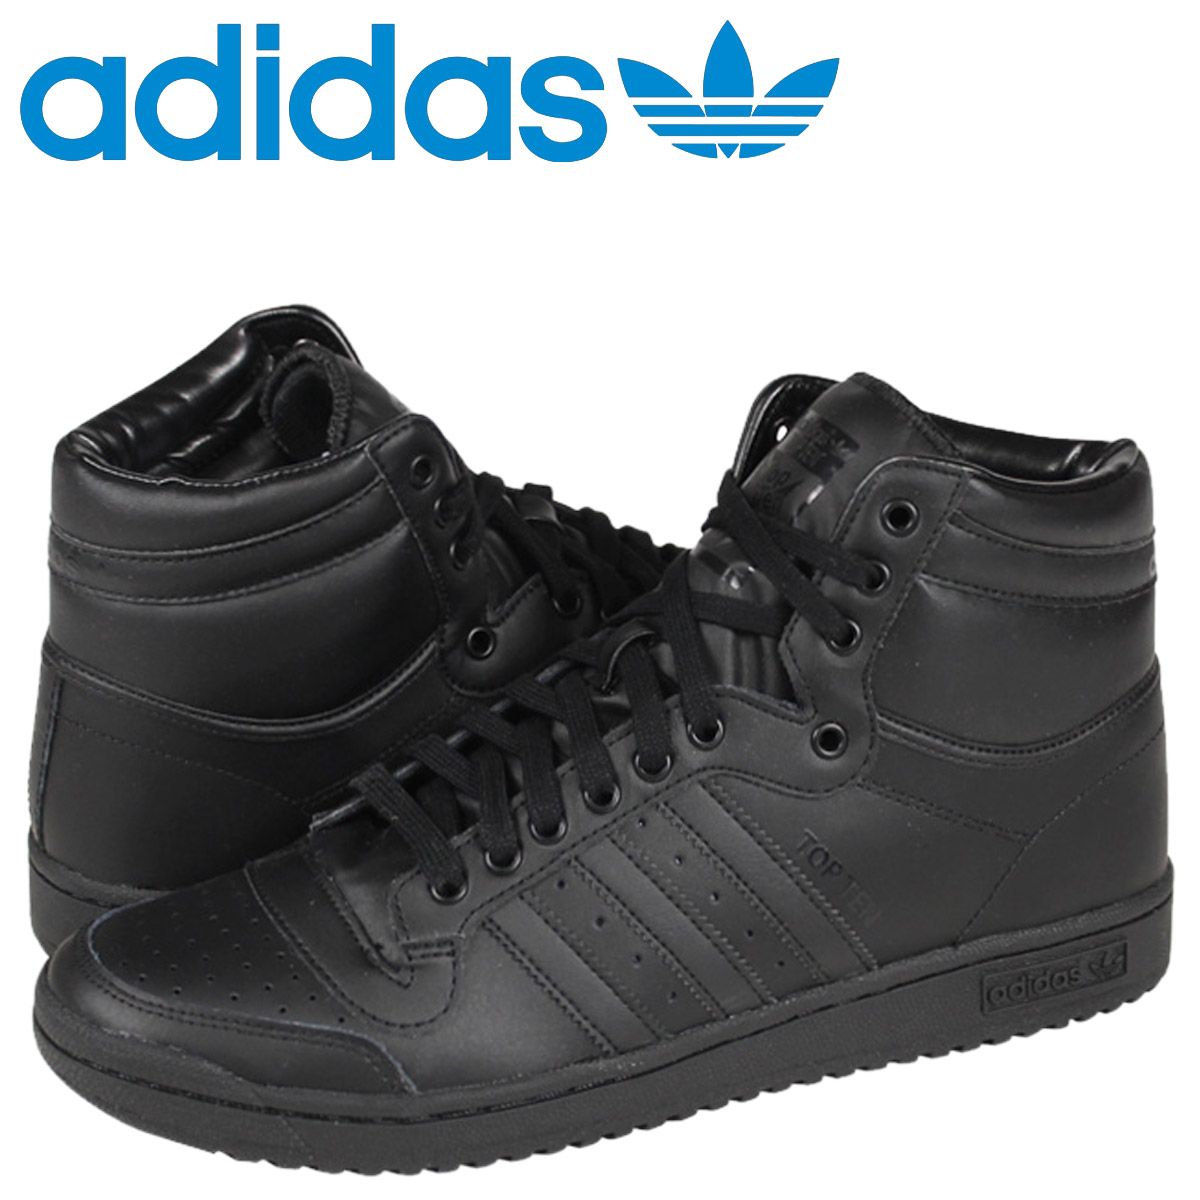 cheap for discount d88bb b3313 adidas originals and☆ TOP TEN HI ☆